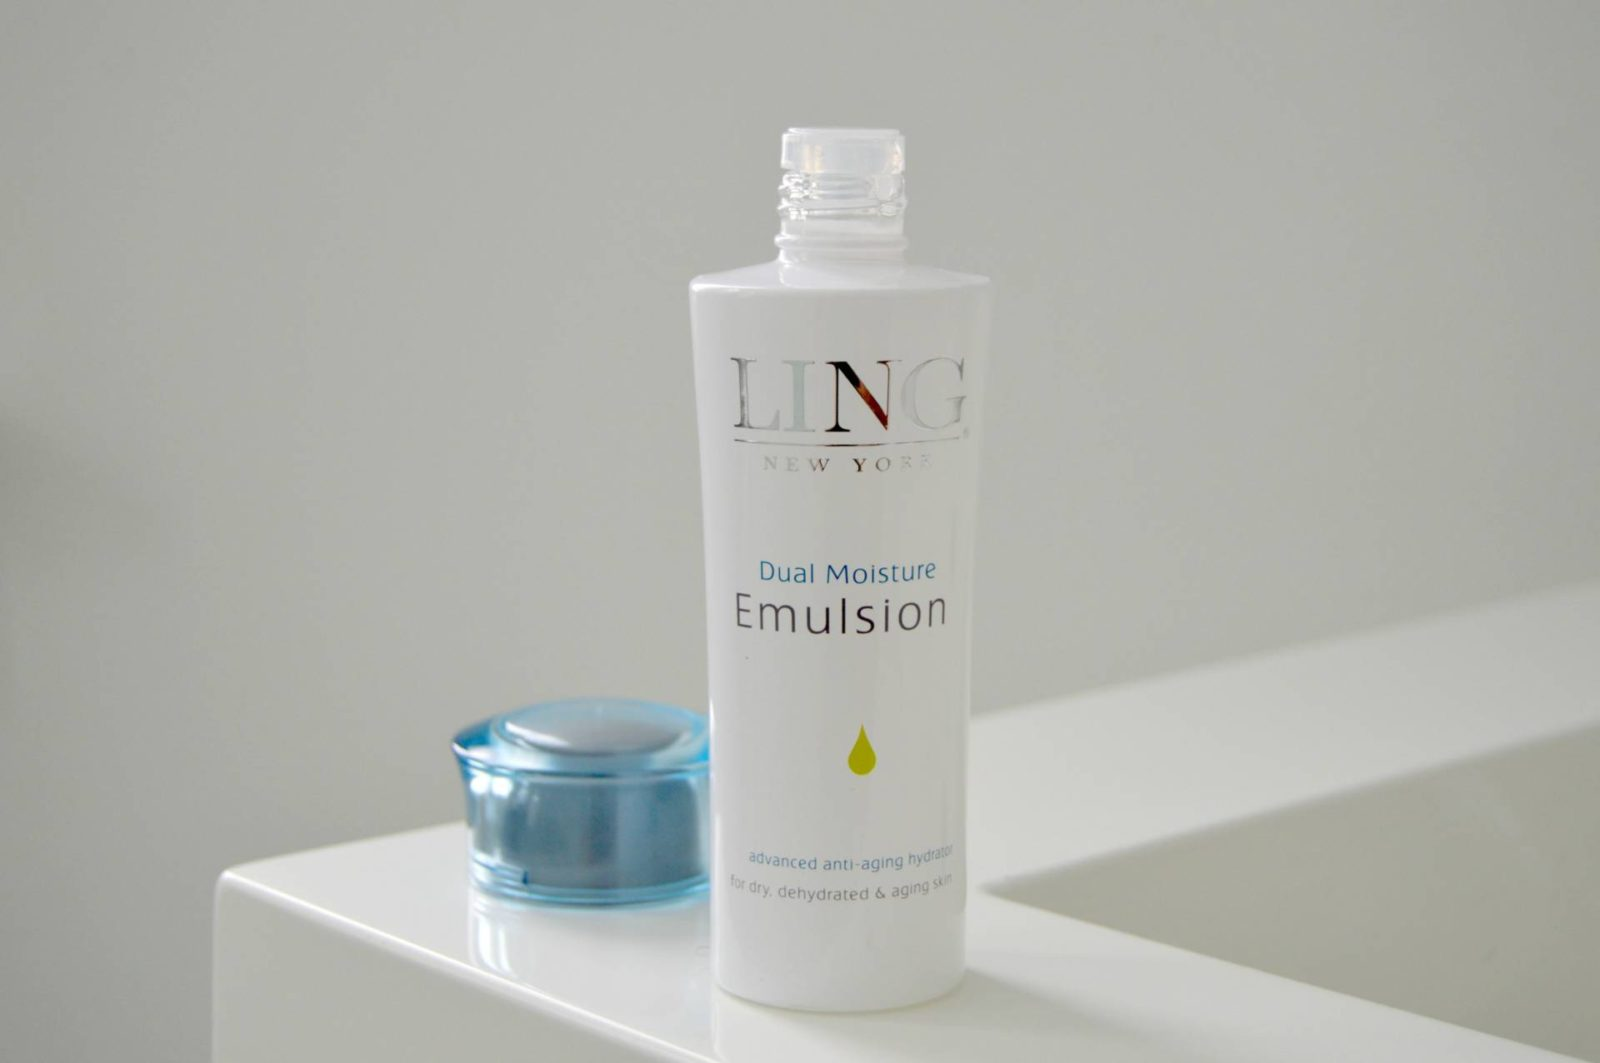 What your skin needs now: LING Dual Moisture Emulsion